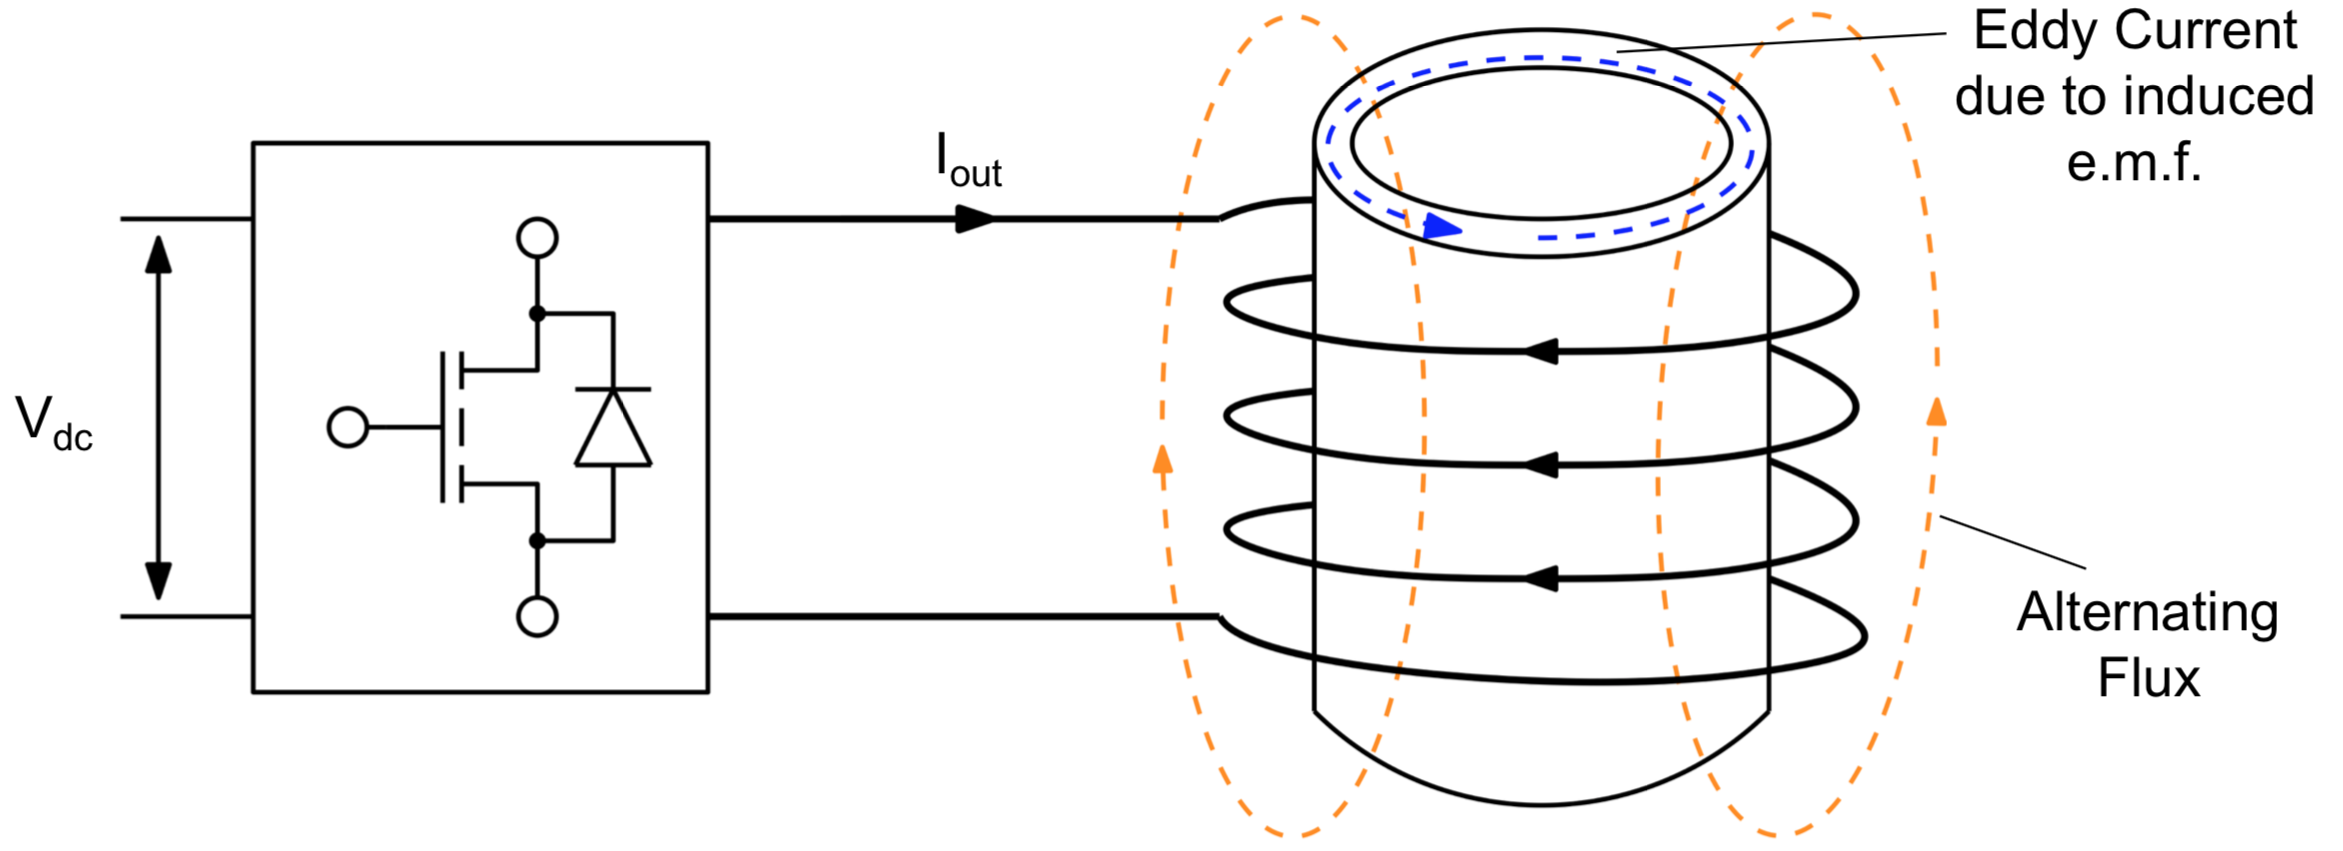 [FPWZ_2684]  Induction Heater for Melting Aluminum - AEEproject - Aalto University Wiki | Induction Coil Wiring Diagram |  | Aalto University Wiki